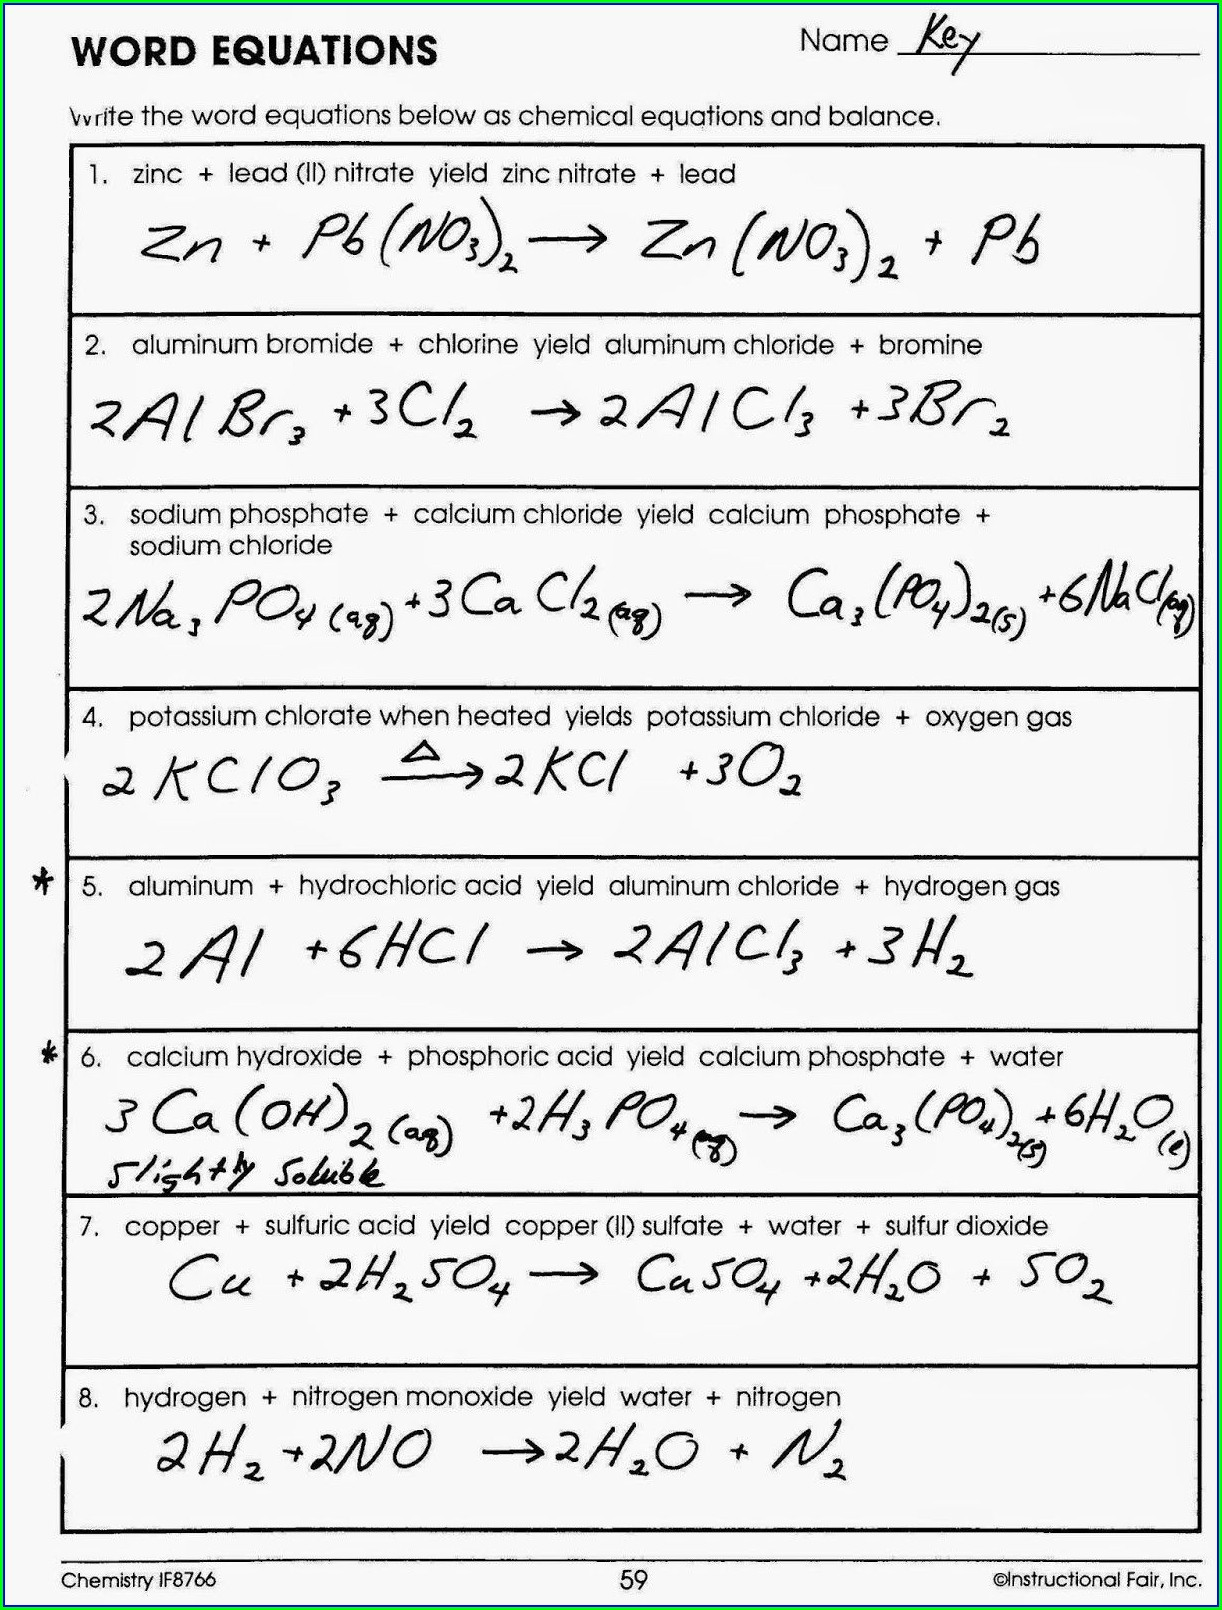 Balancing Chemical Word Equations Practice Worksheet With Answers